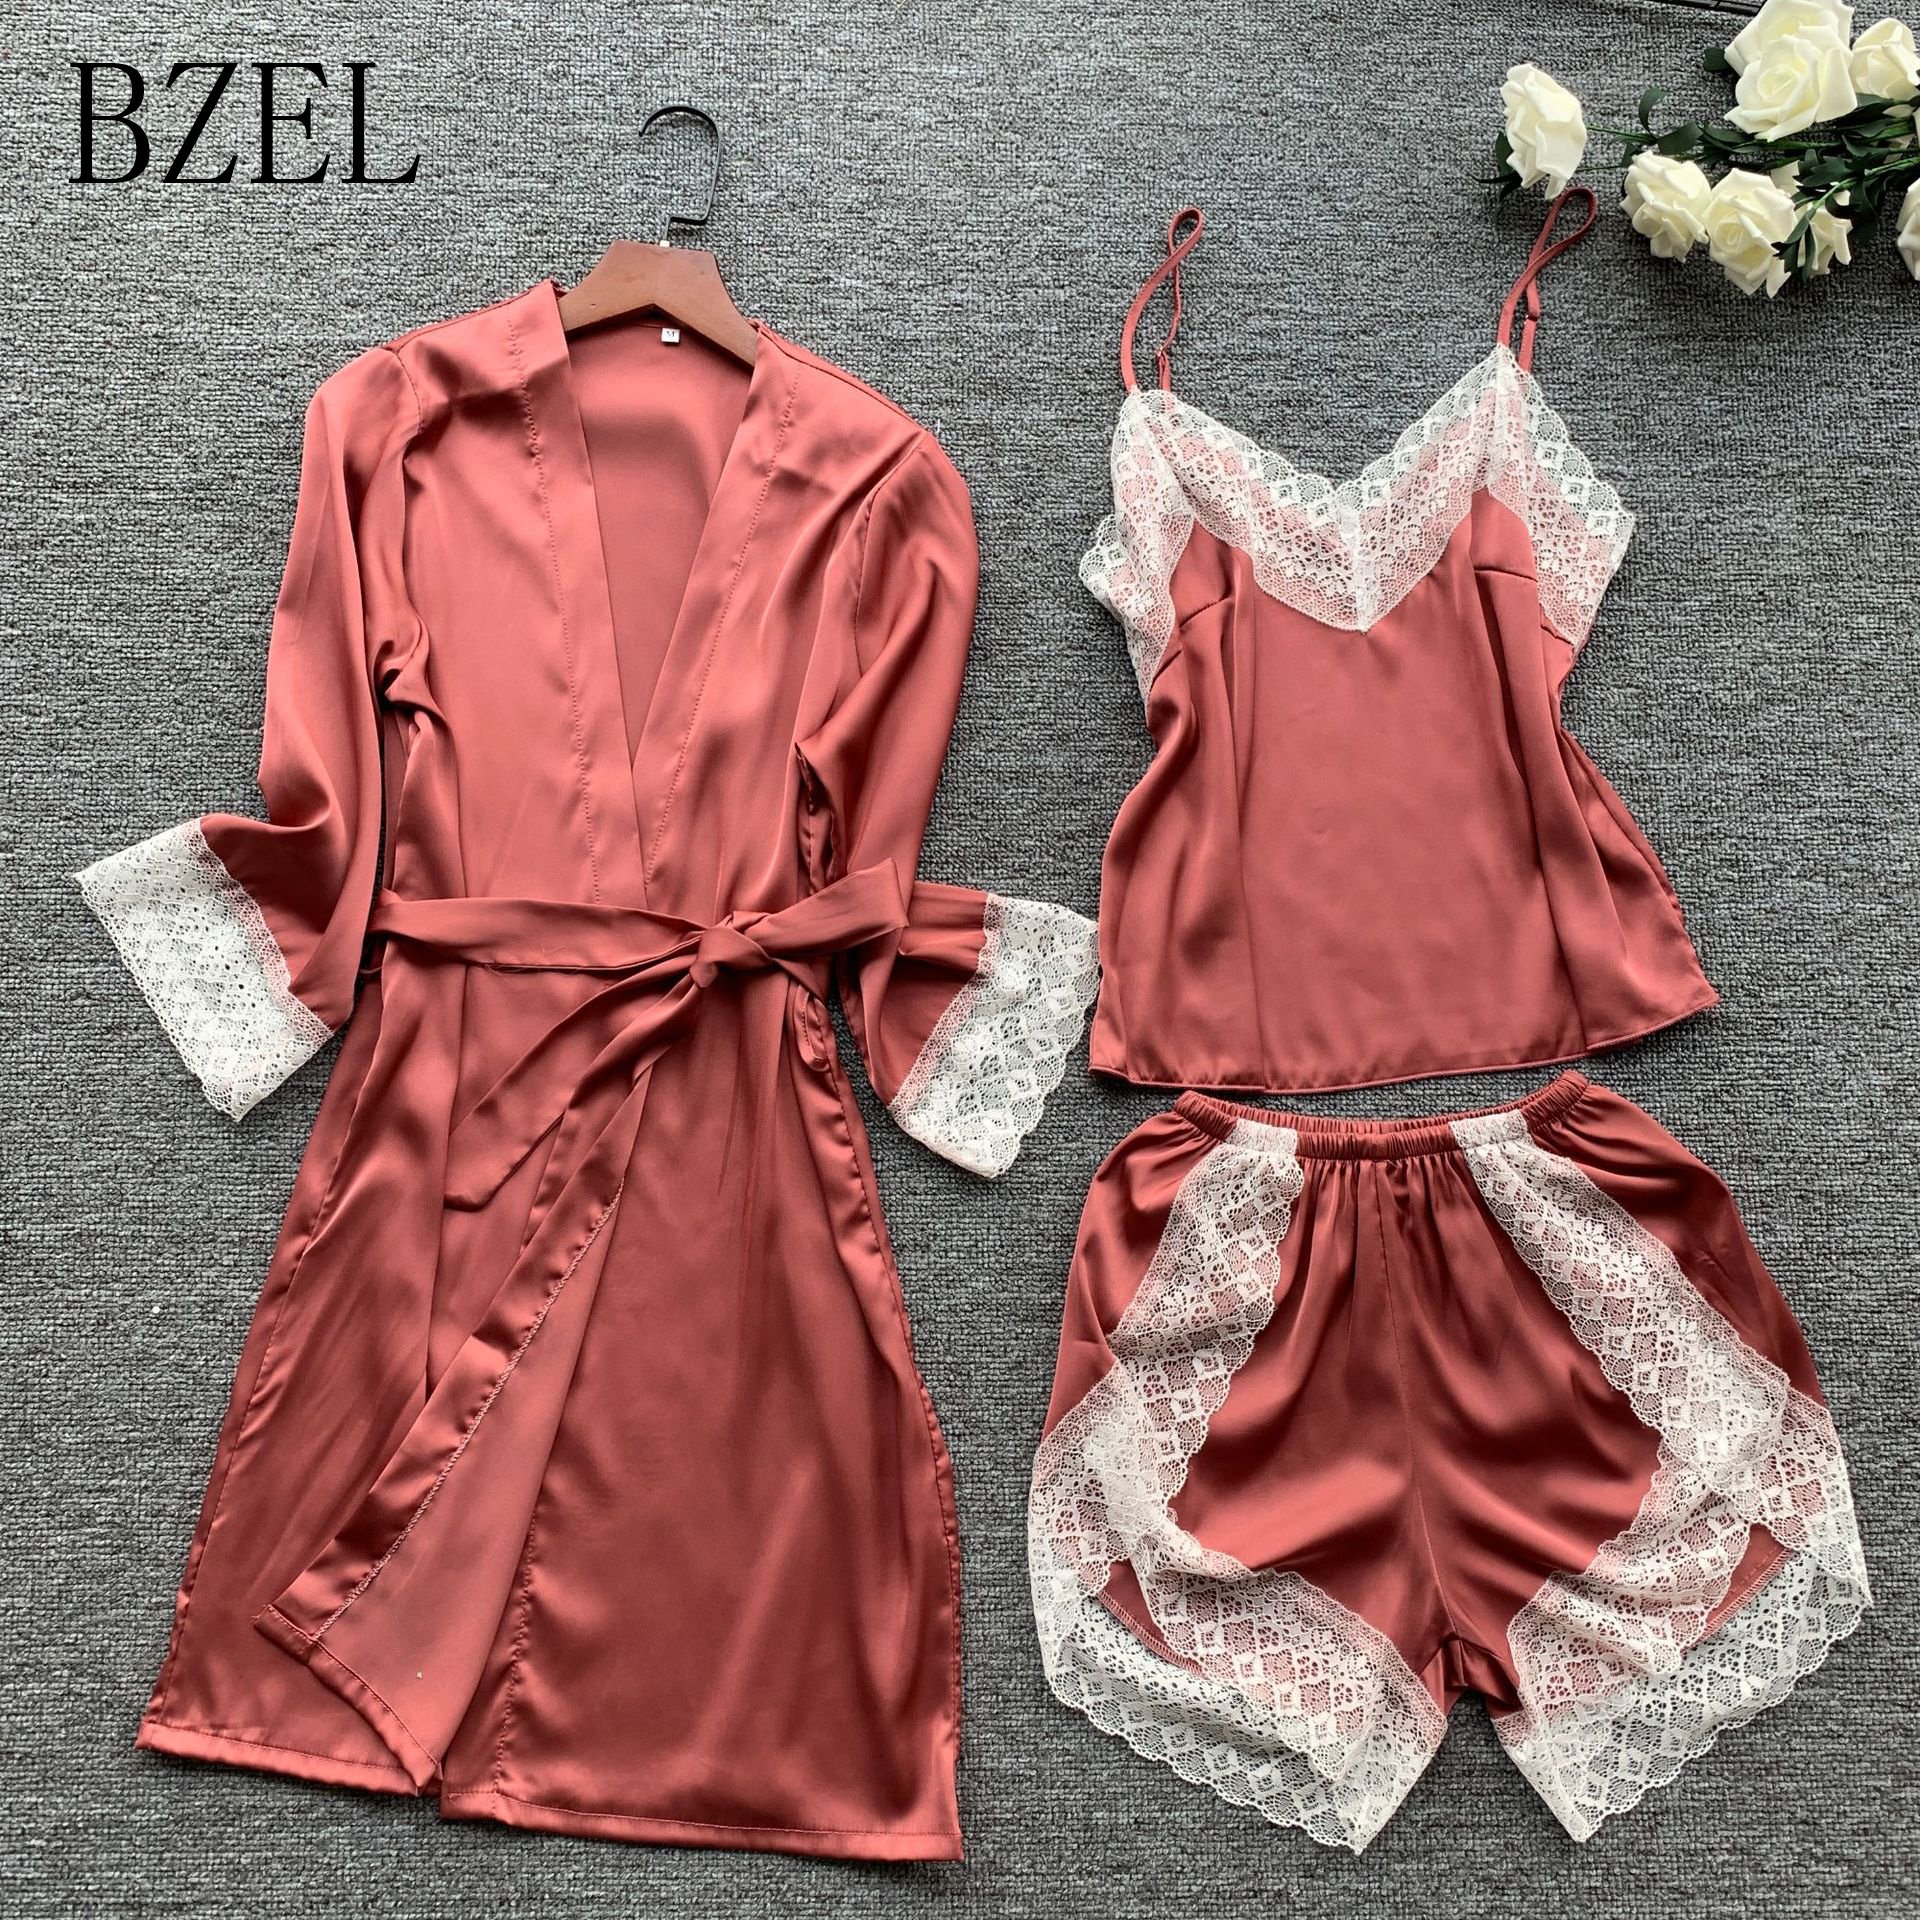 BZEL Sexy Lace Pajama Sets Silk Satin Pijama For Women V-nevk Sleepwear Sling+Shorts+Robe Nighty Set 3PCS Stylish Ladies Pyjamas